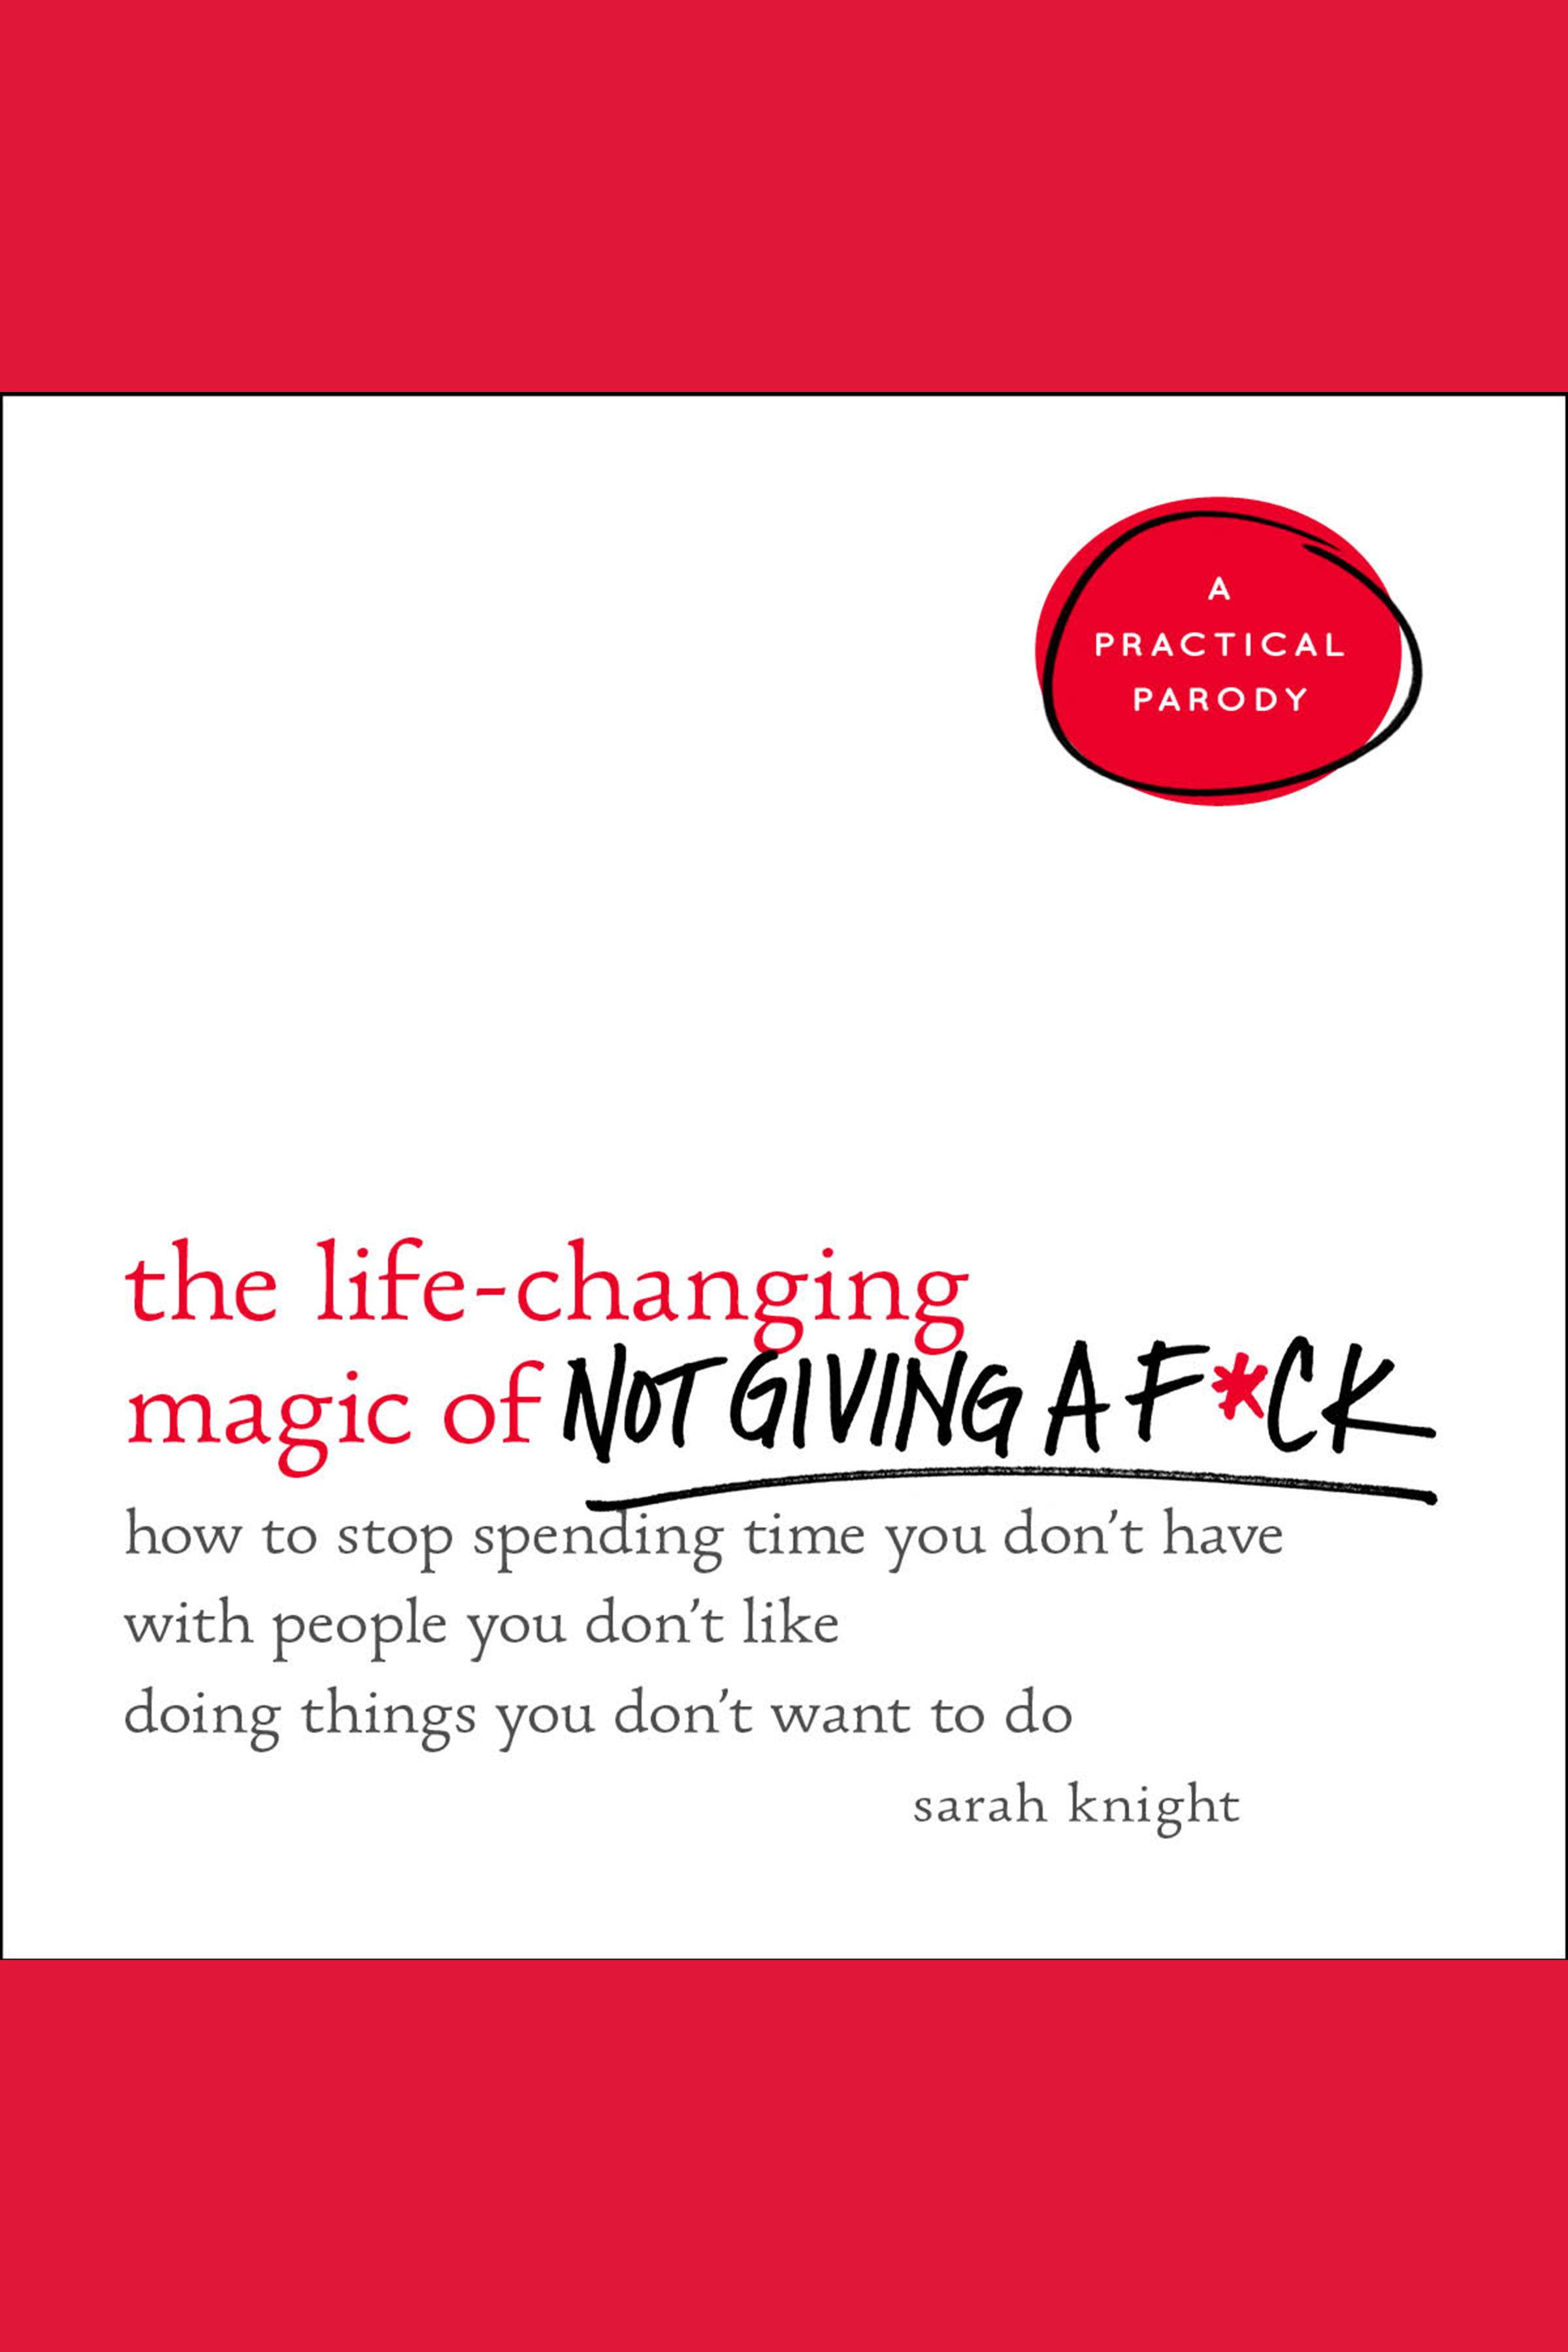 The life-changing magic of not giving a f*ck [AudioEbook] : how to stop spending time you don't have with people you don't like doing things you don't want to do